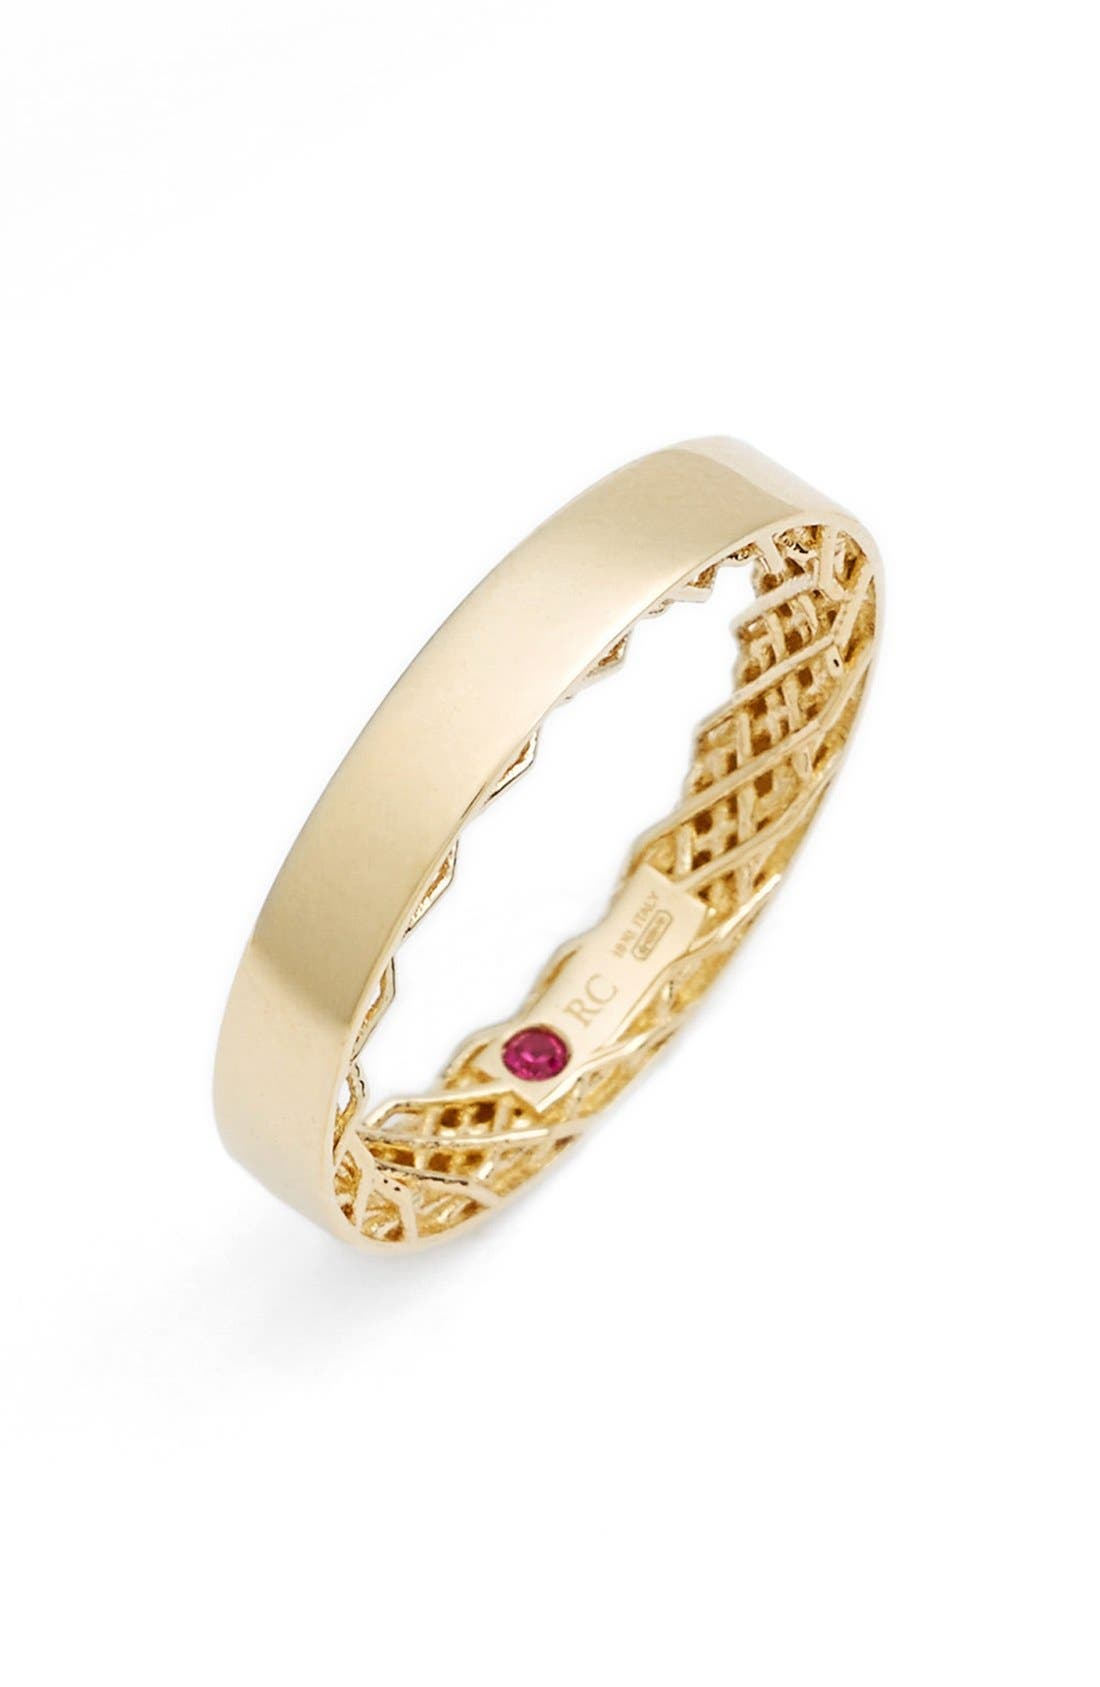 Main Image - Roberto Coin 'Symphony - Golden Gate' Band Ring